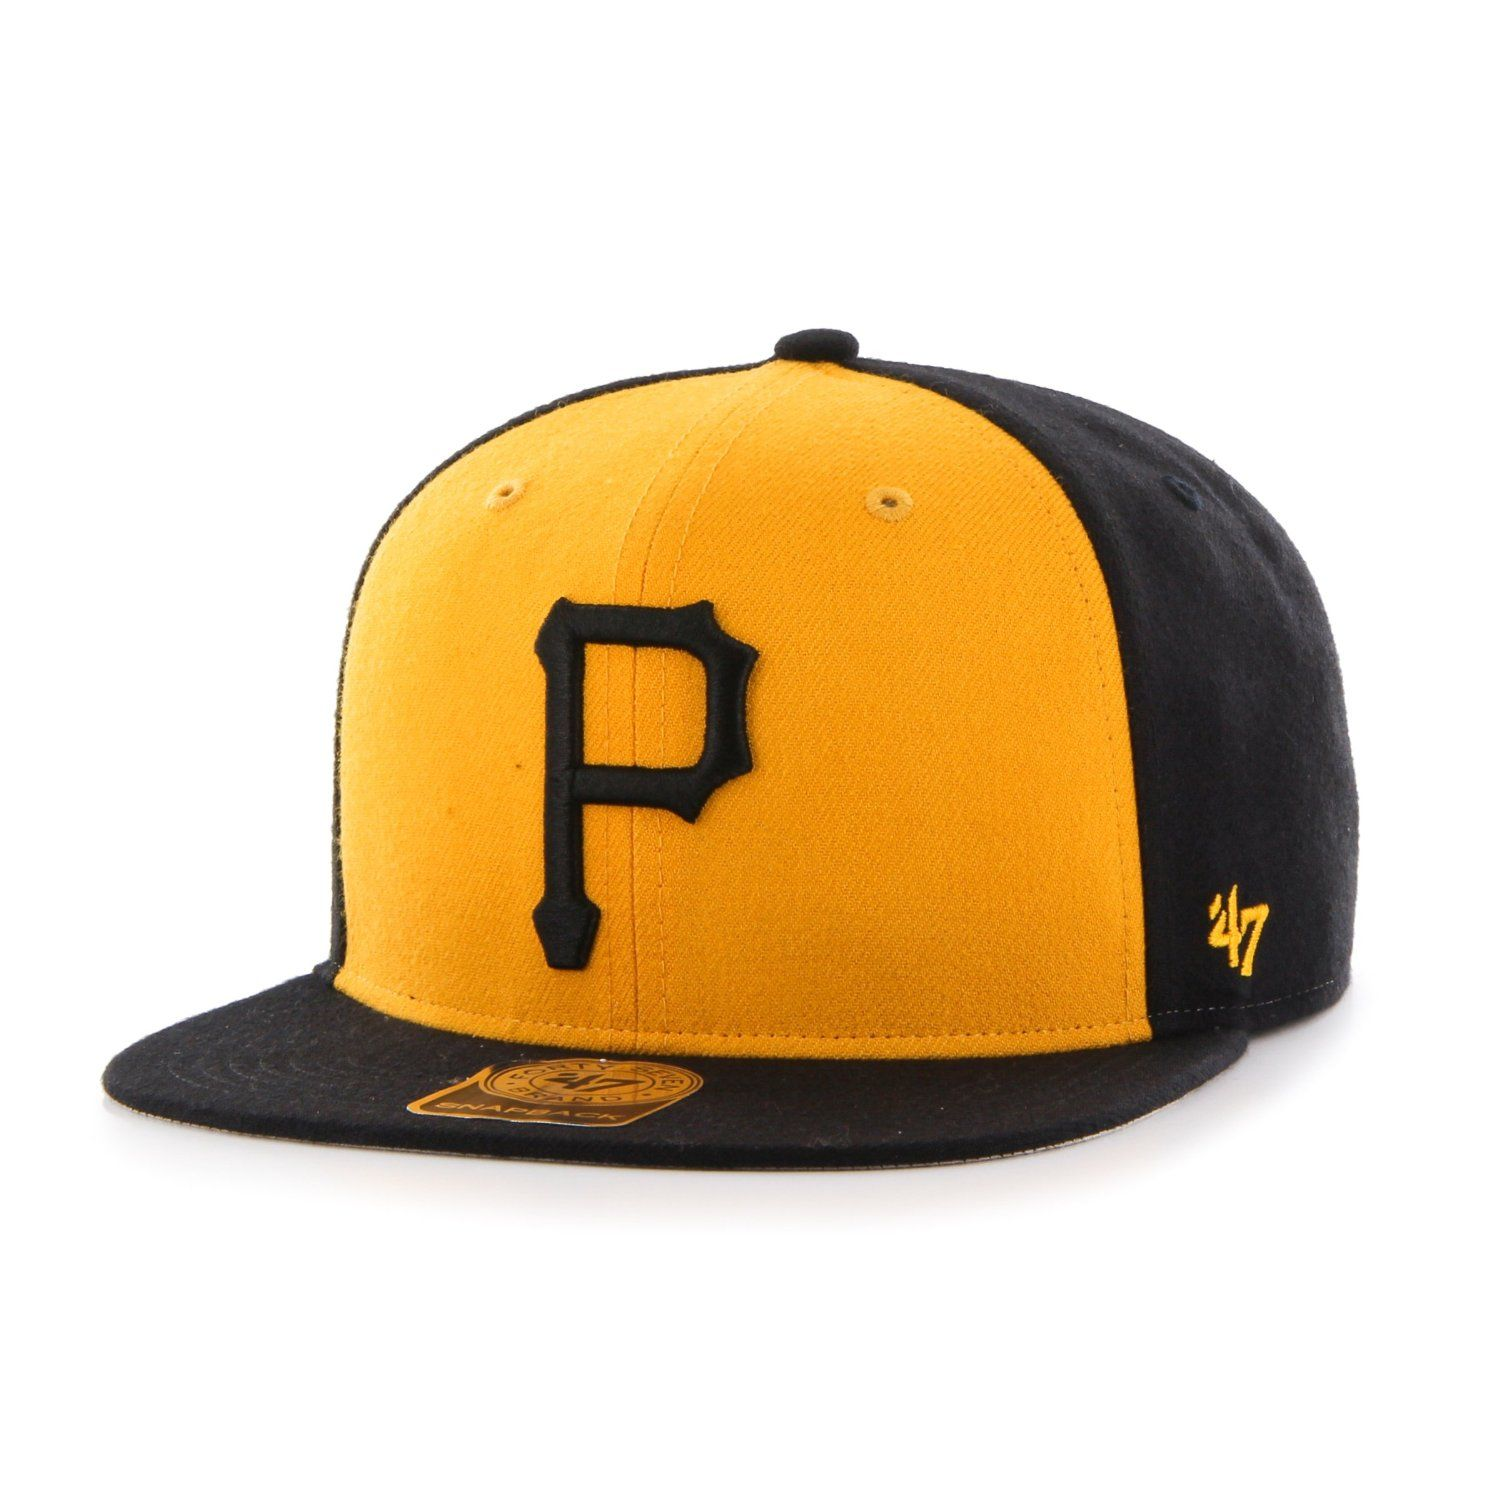 the best attitude 7c6d0 3d622 Amazon.com   MLB Pittsburgh Pirates Sure Shot Accent  47 Captain Adjustable  Snapback Hat, black, One Size, Black   Sports   Outdoors